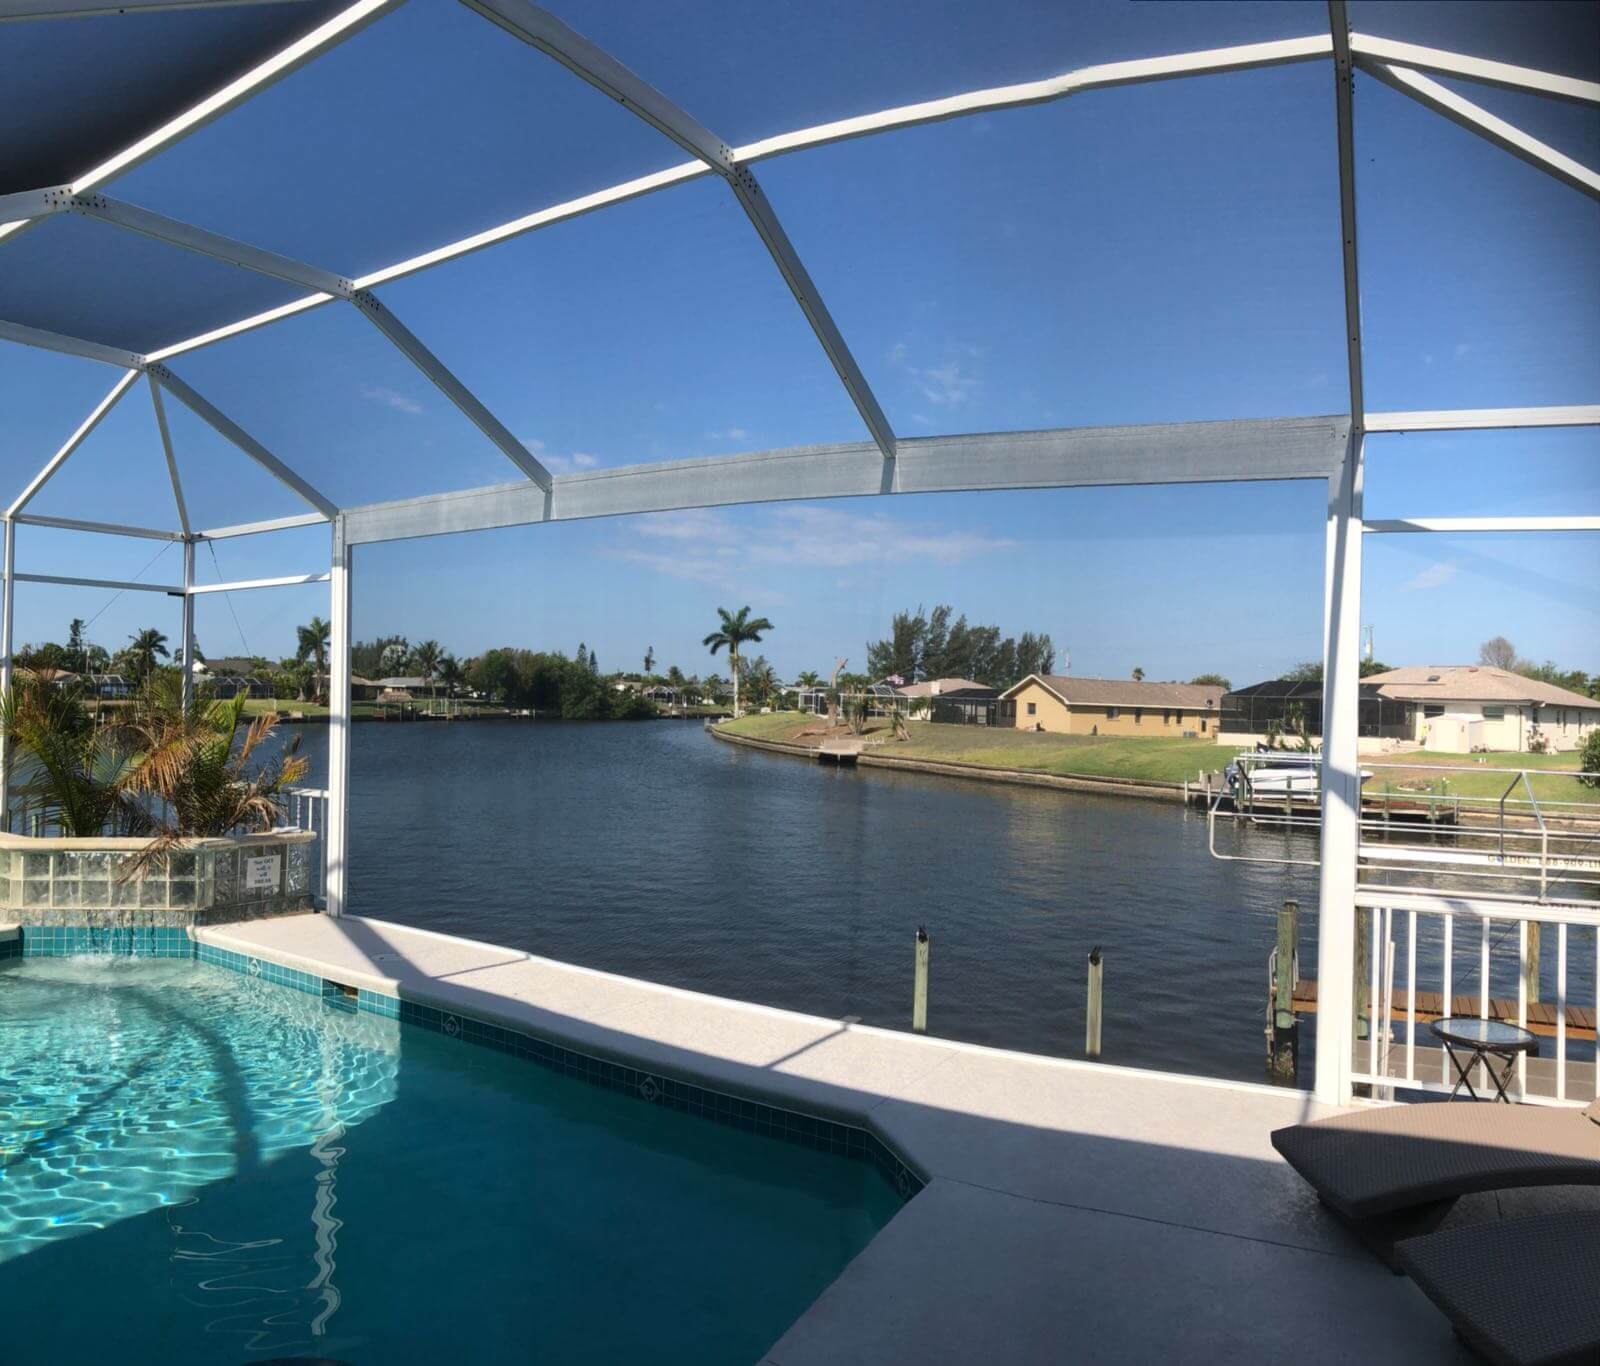 Neues Screenfenster im Ferienhaus Coral Belle in Cape Coral